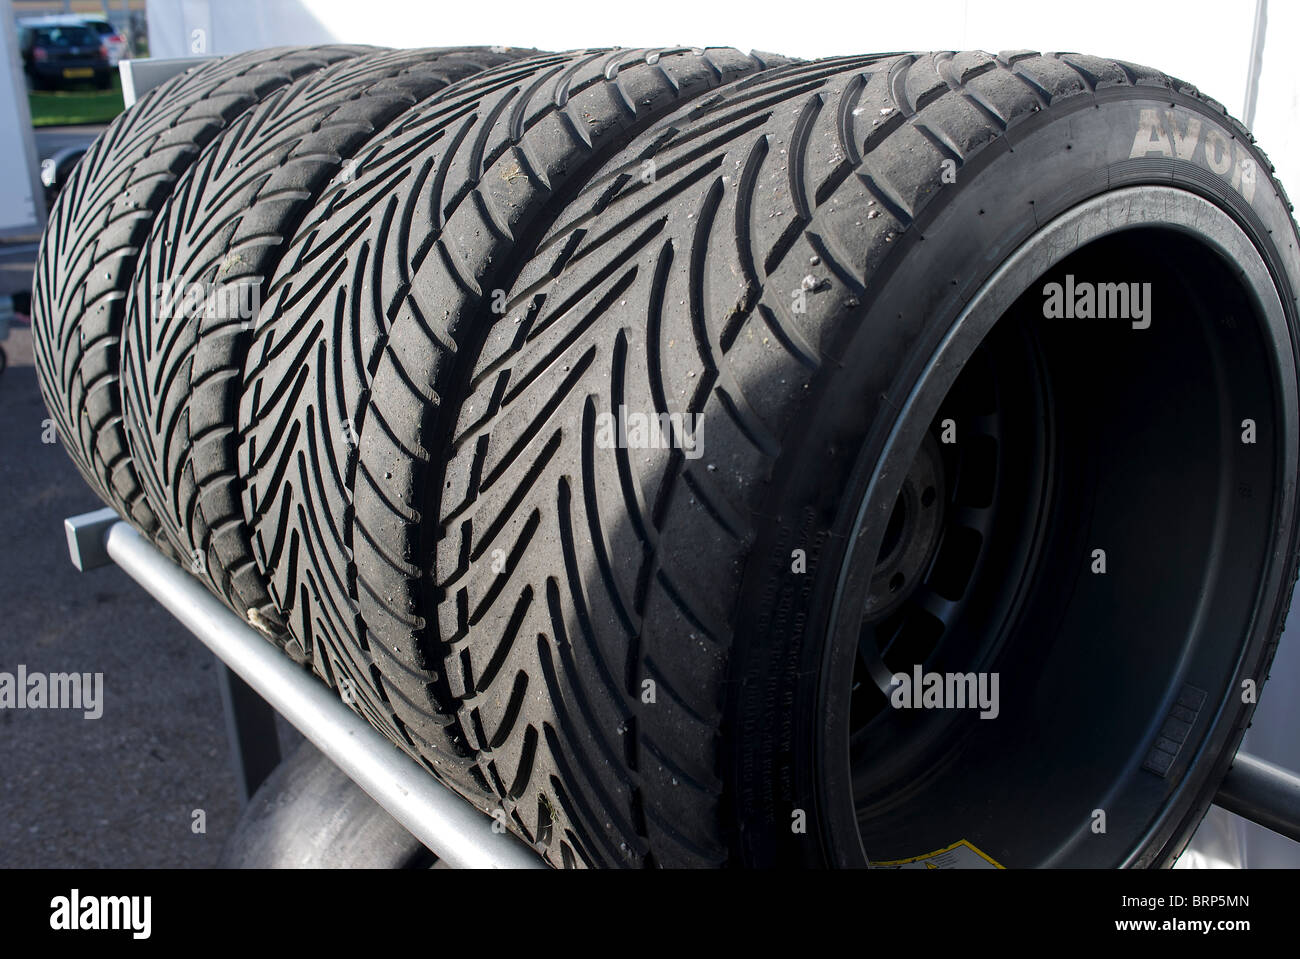 Racing Tyres in a rack - Stock Image